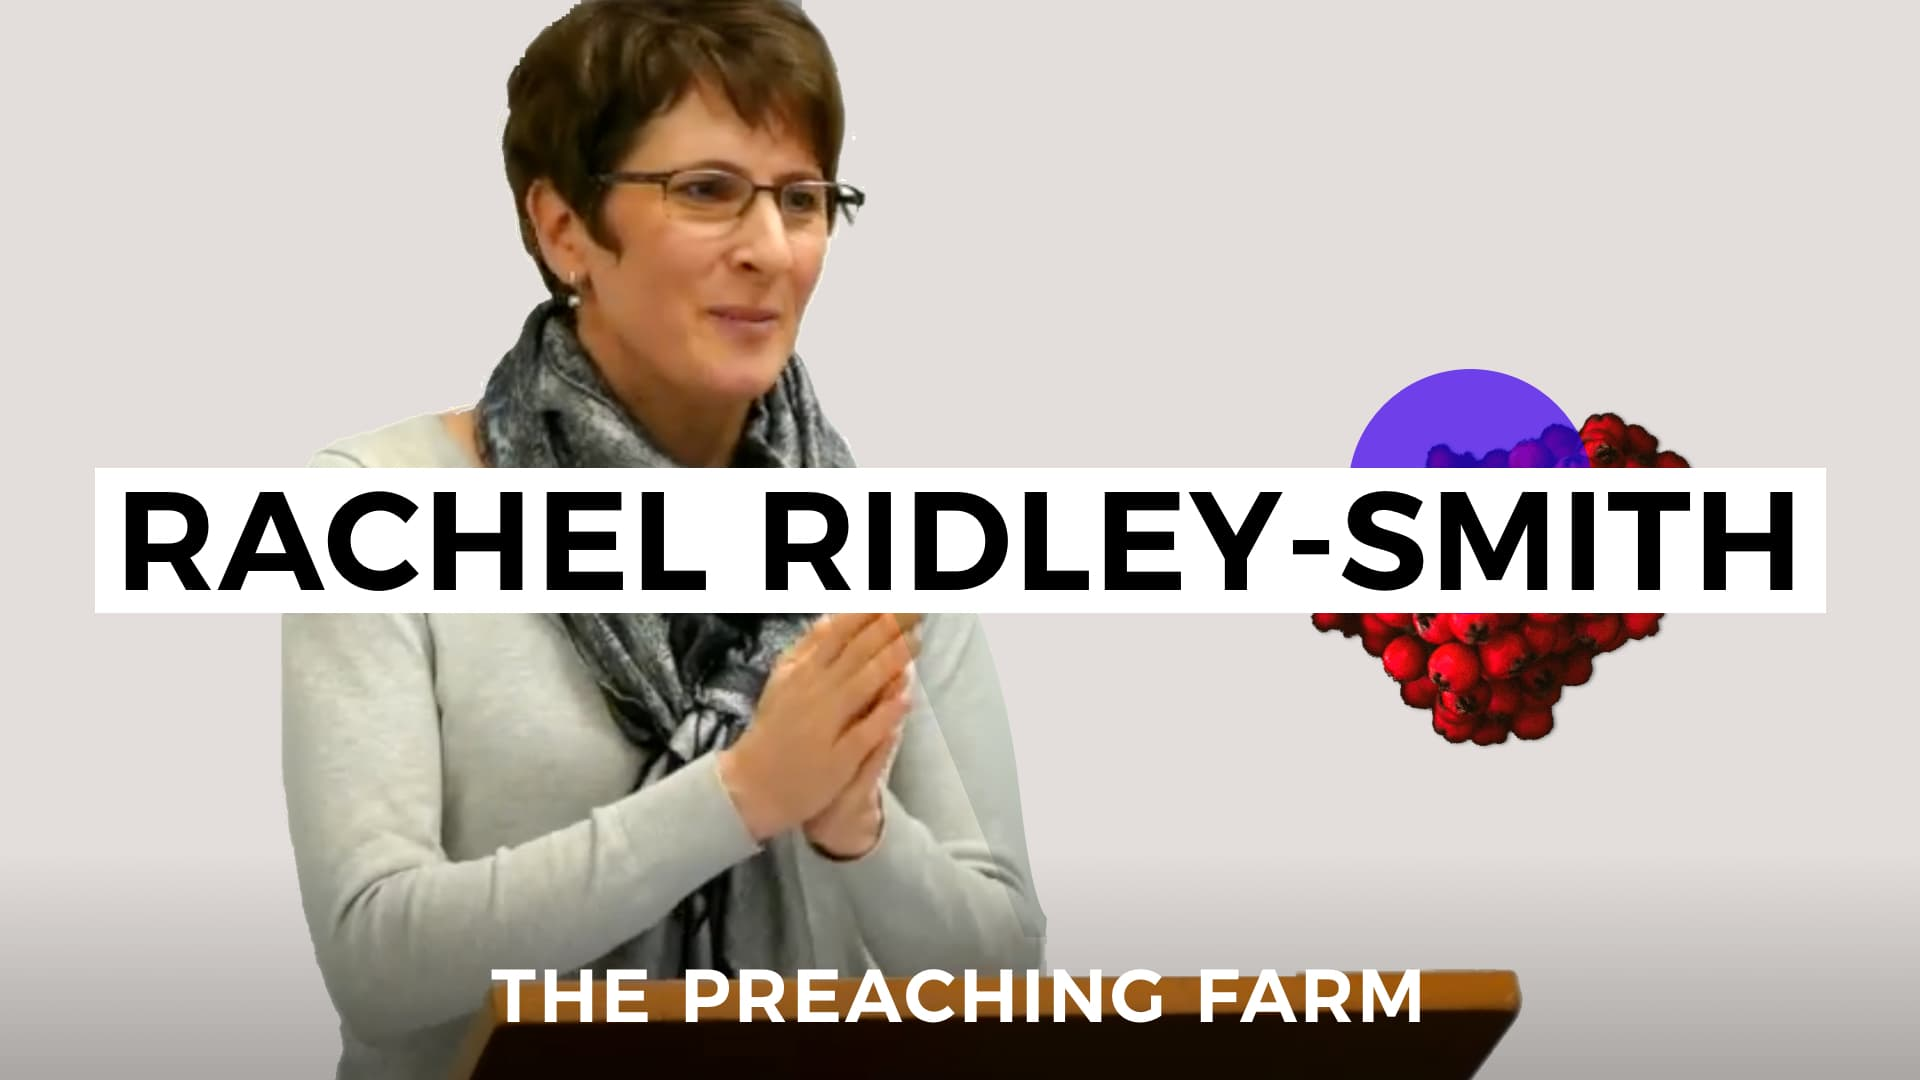 The Preaching Farm 2: Rachel Ridley-Smith